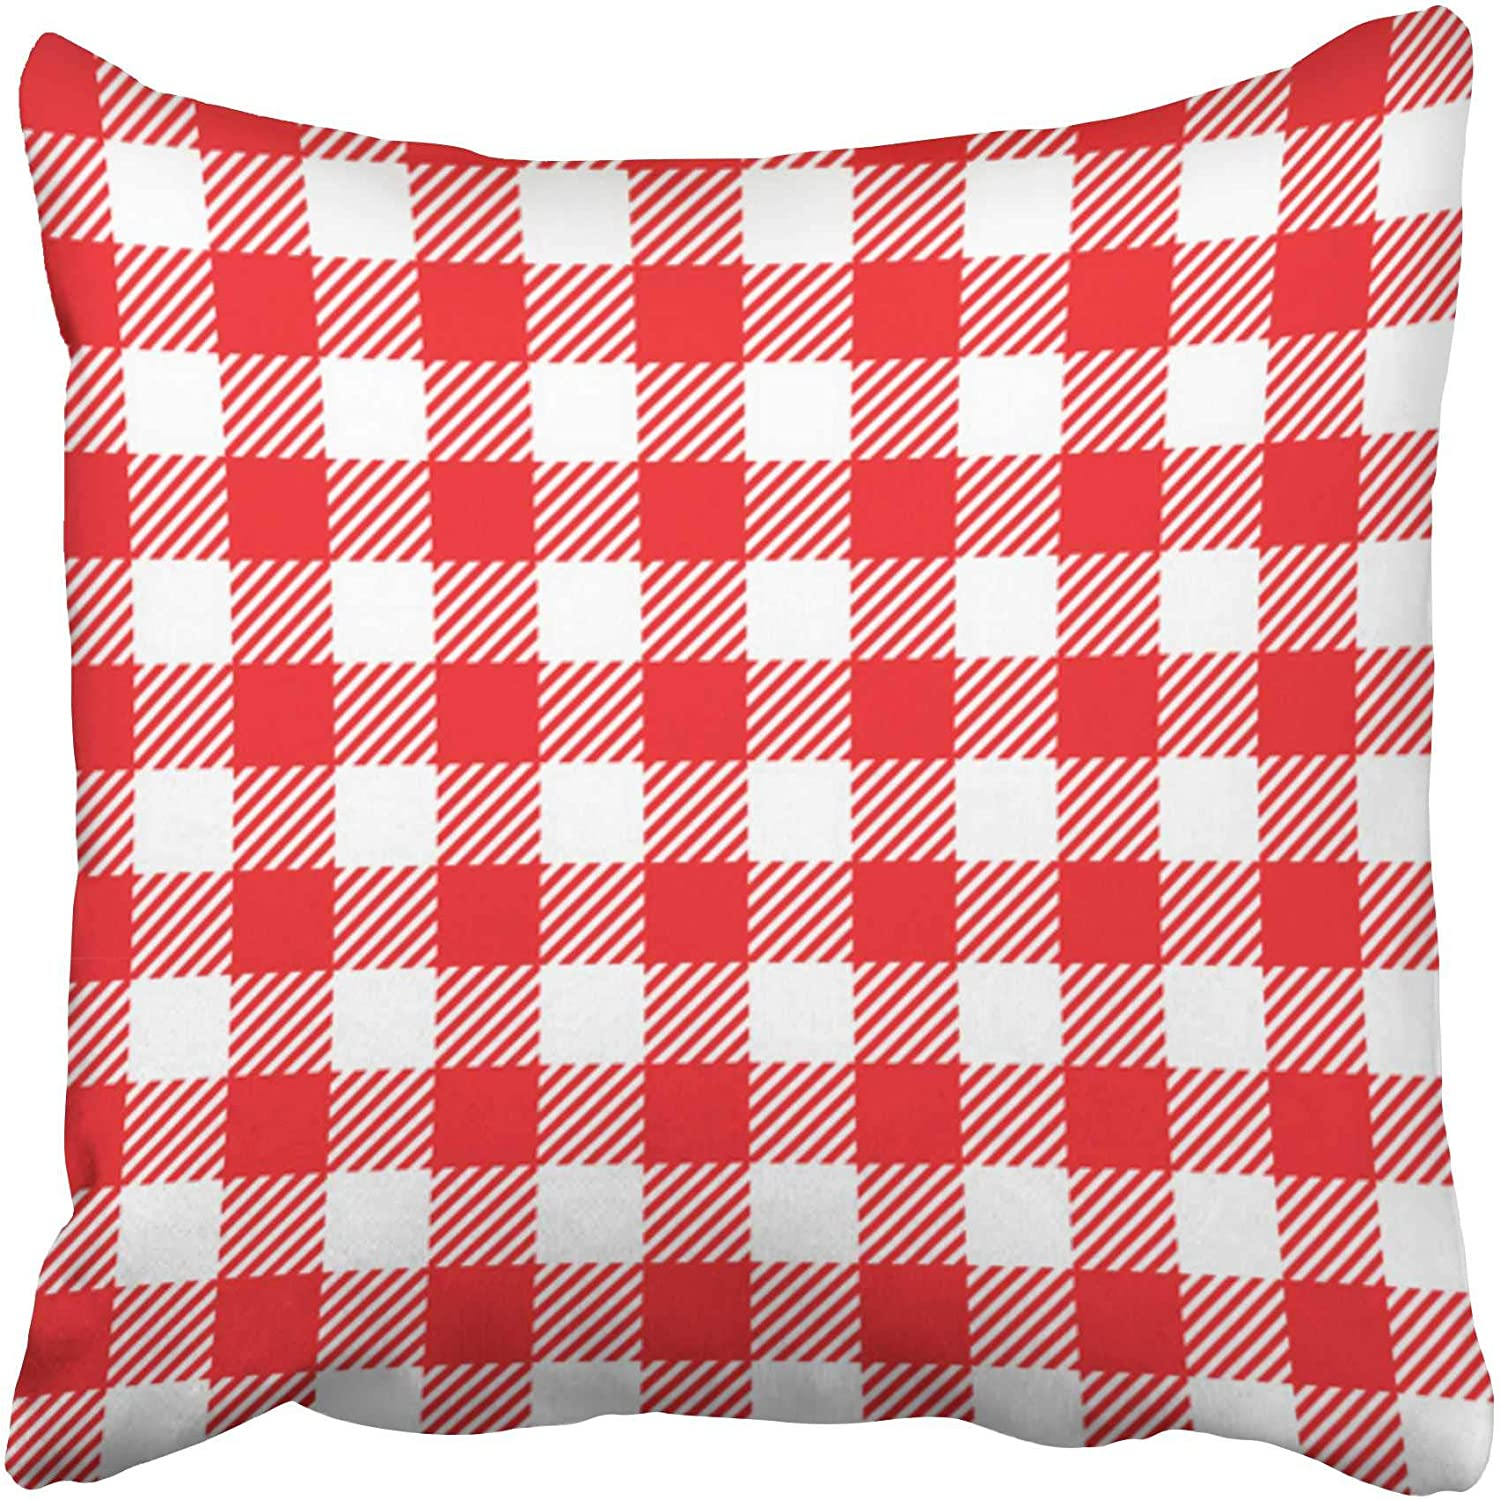 Amazon Com Emvency Decorative Throw Pillow Covers Cases Red Gingham Retro Blue Picnic Plaid Breakfast White Basket Vintage Country 20x20 Inches Pillowcases Case Cover Cushion Two Sided Home Kitchen